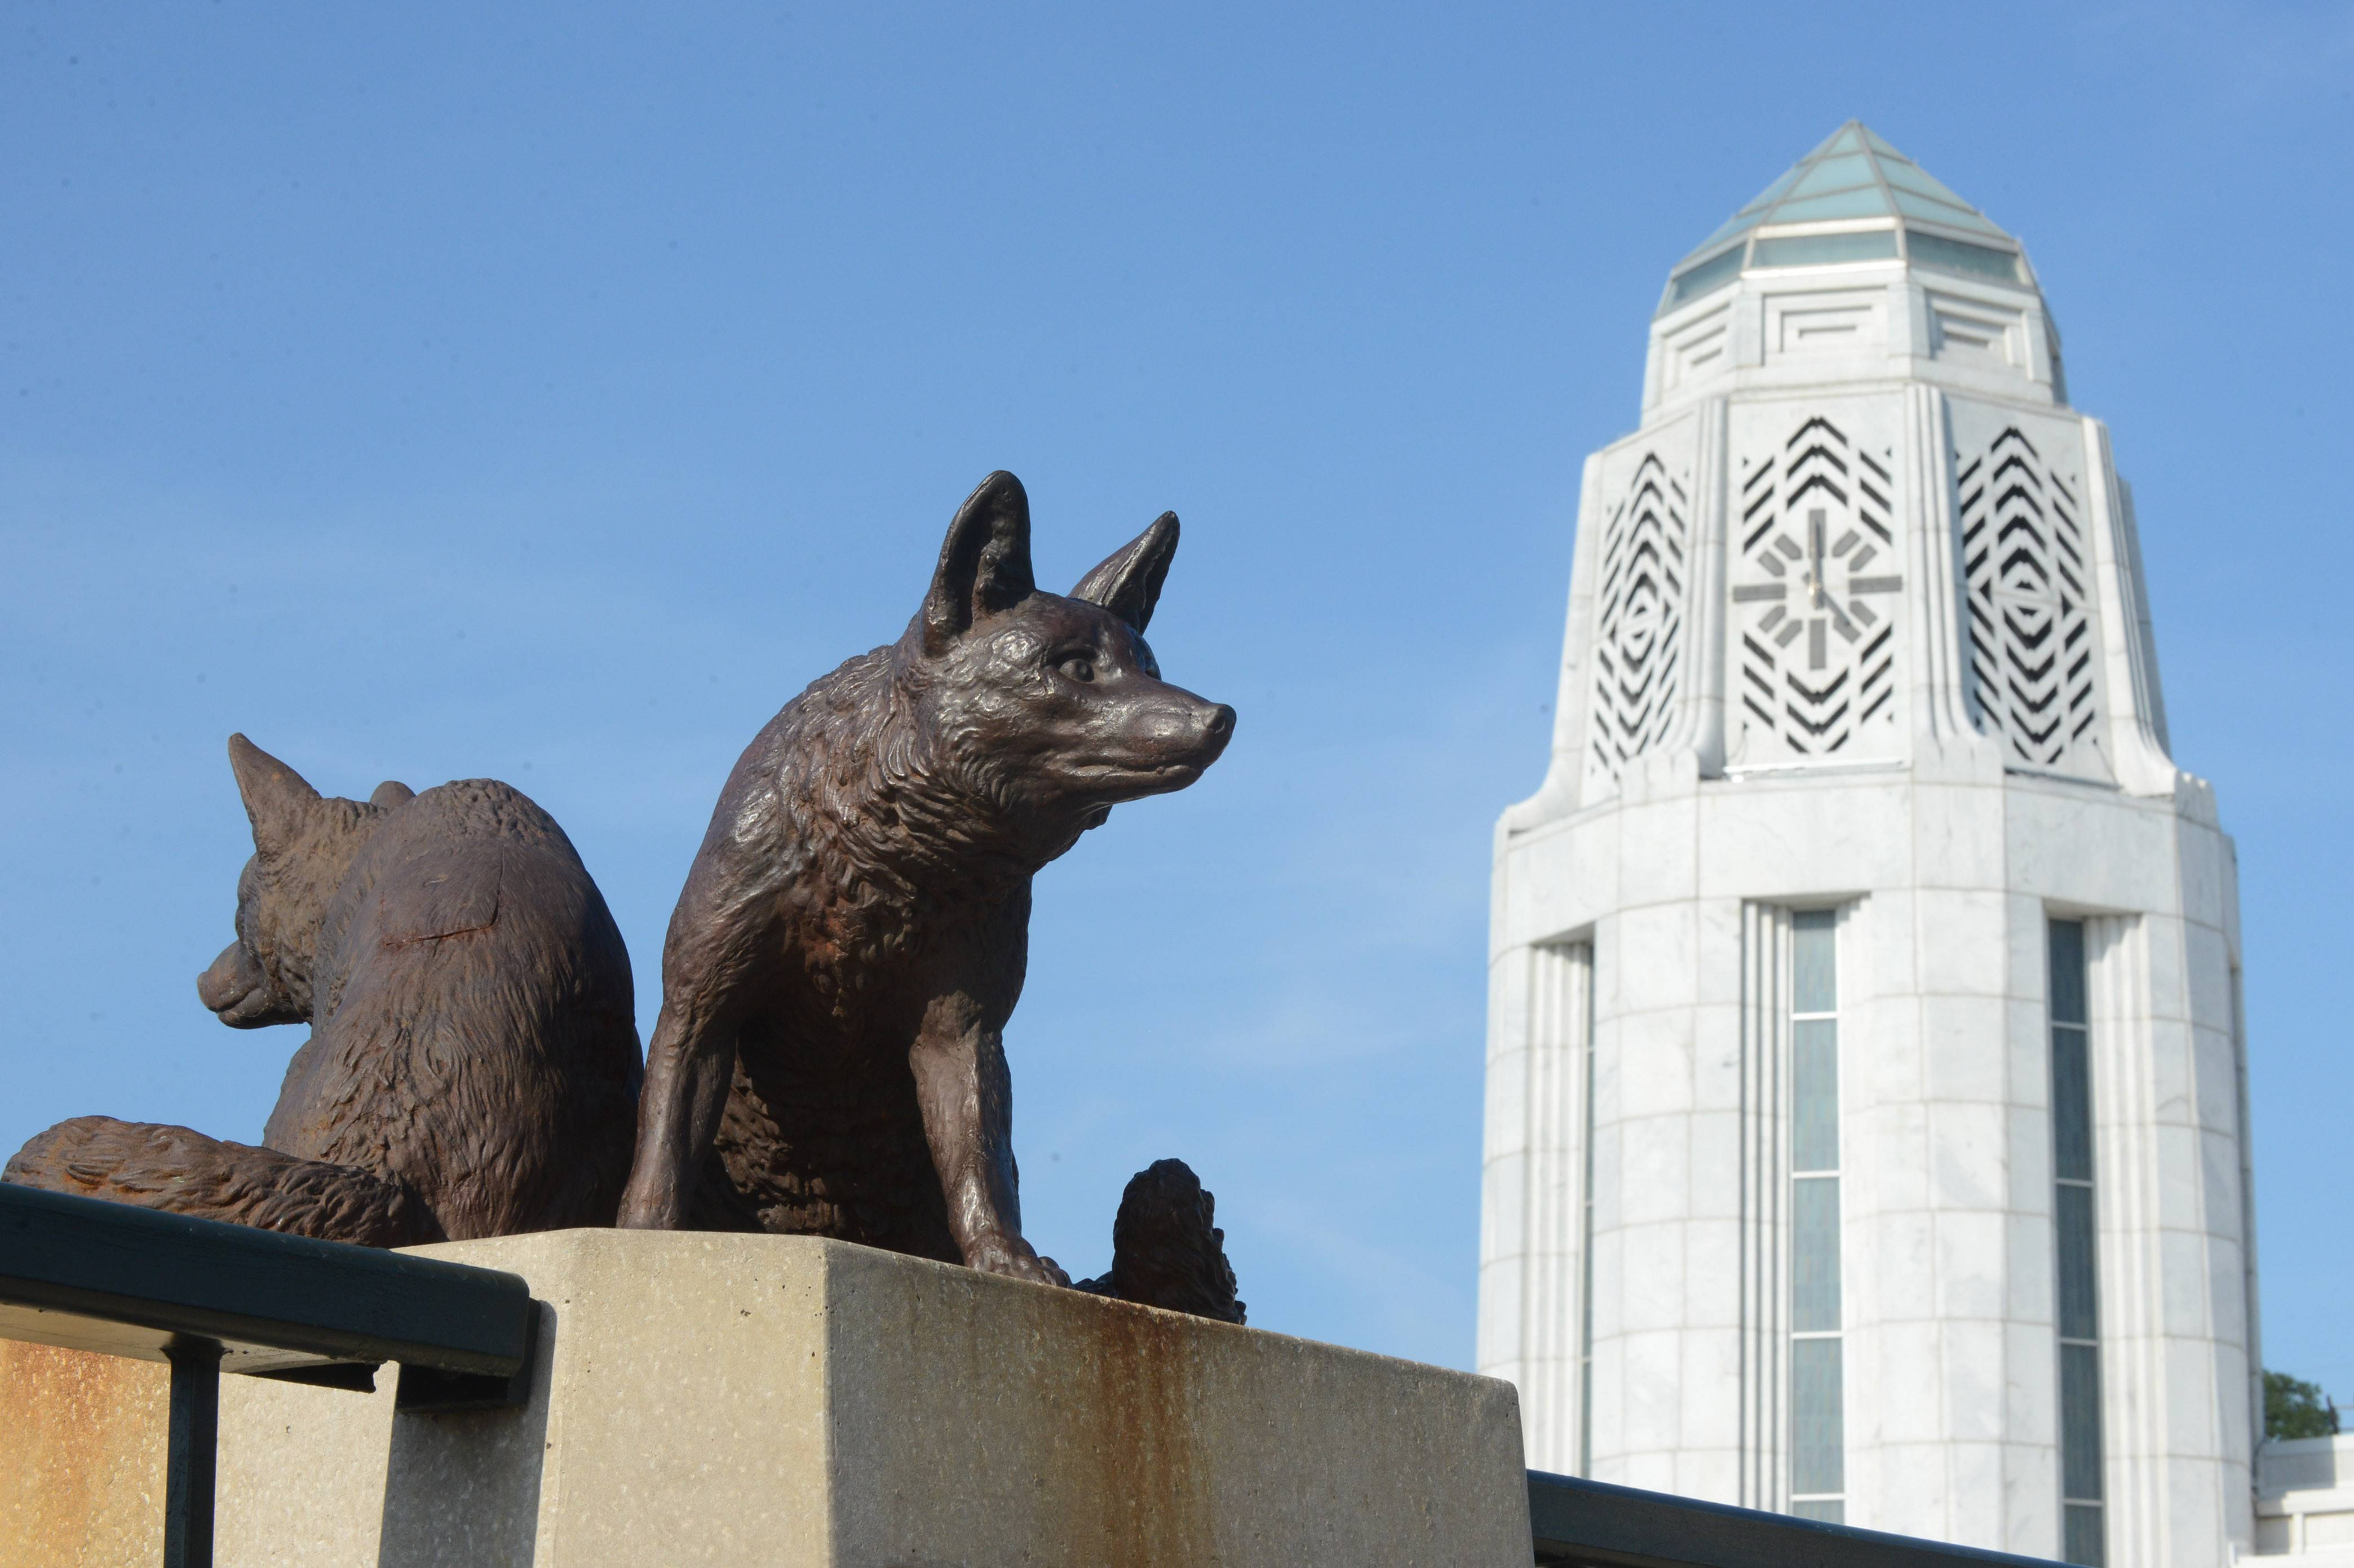 As the St. Charles Charlemagne Award dinner edges toward the century mark, Dave Heun reflects on its history, in which the fox statues on the Main Street bridge play a part.